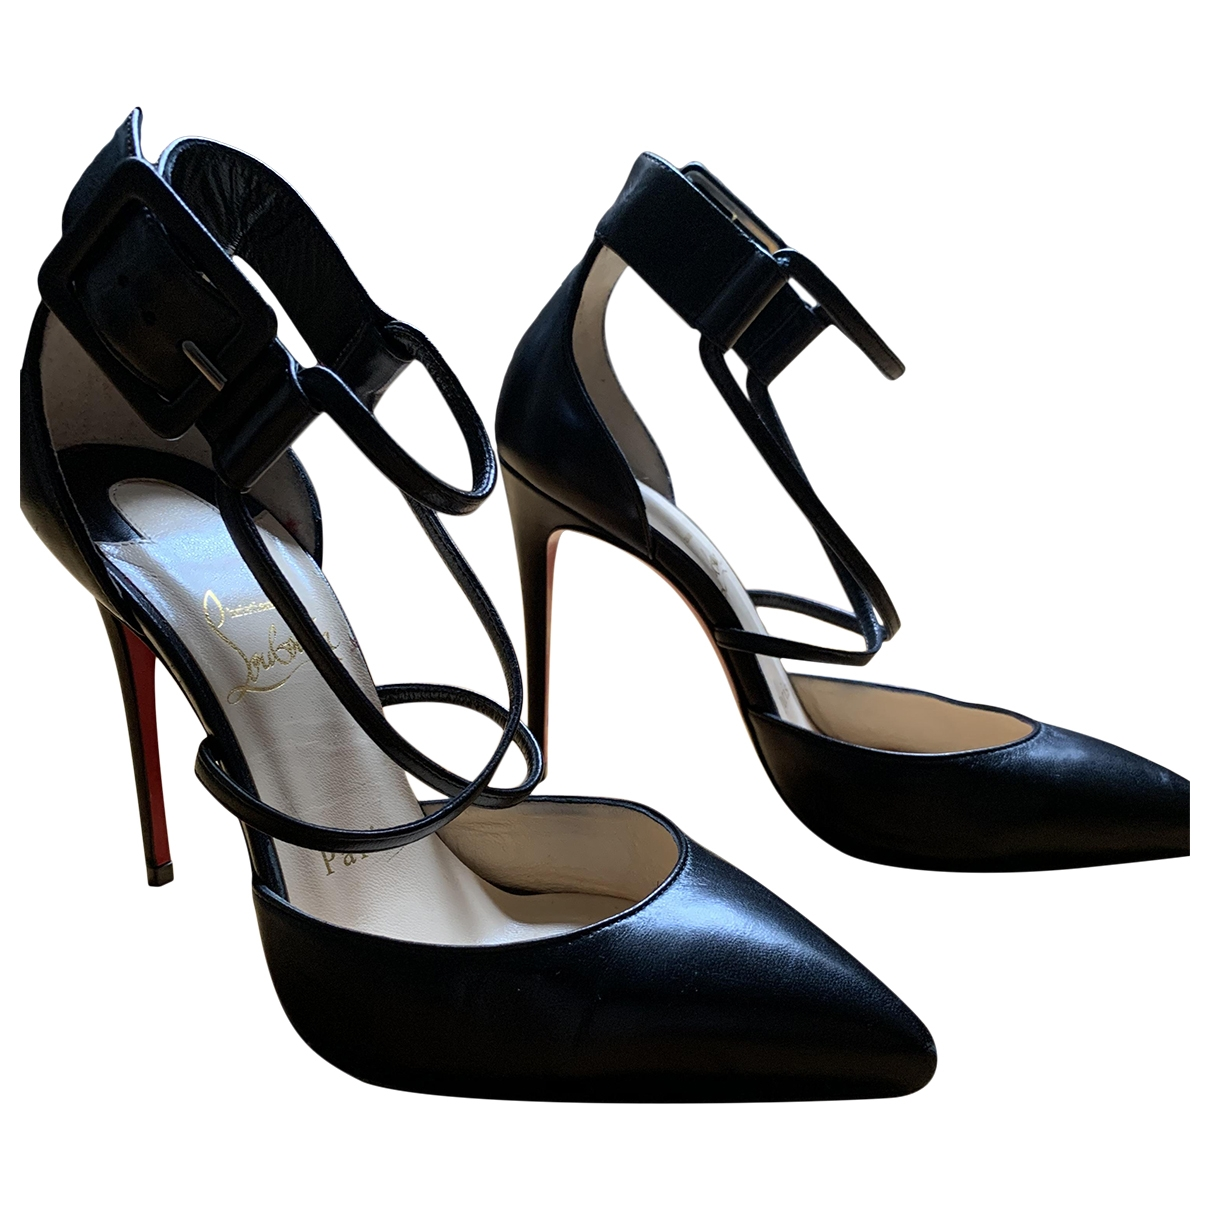 Christian Louboutin \N Black Leather Heels for Women 36 EU